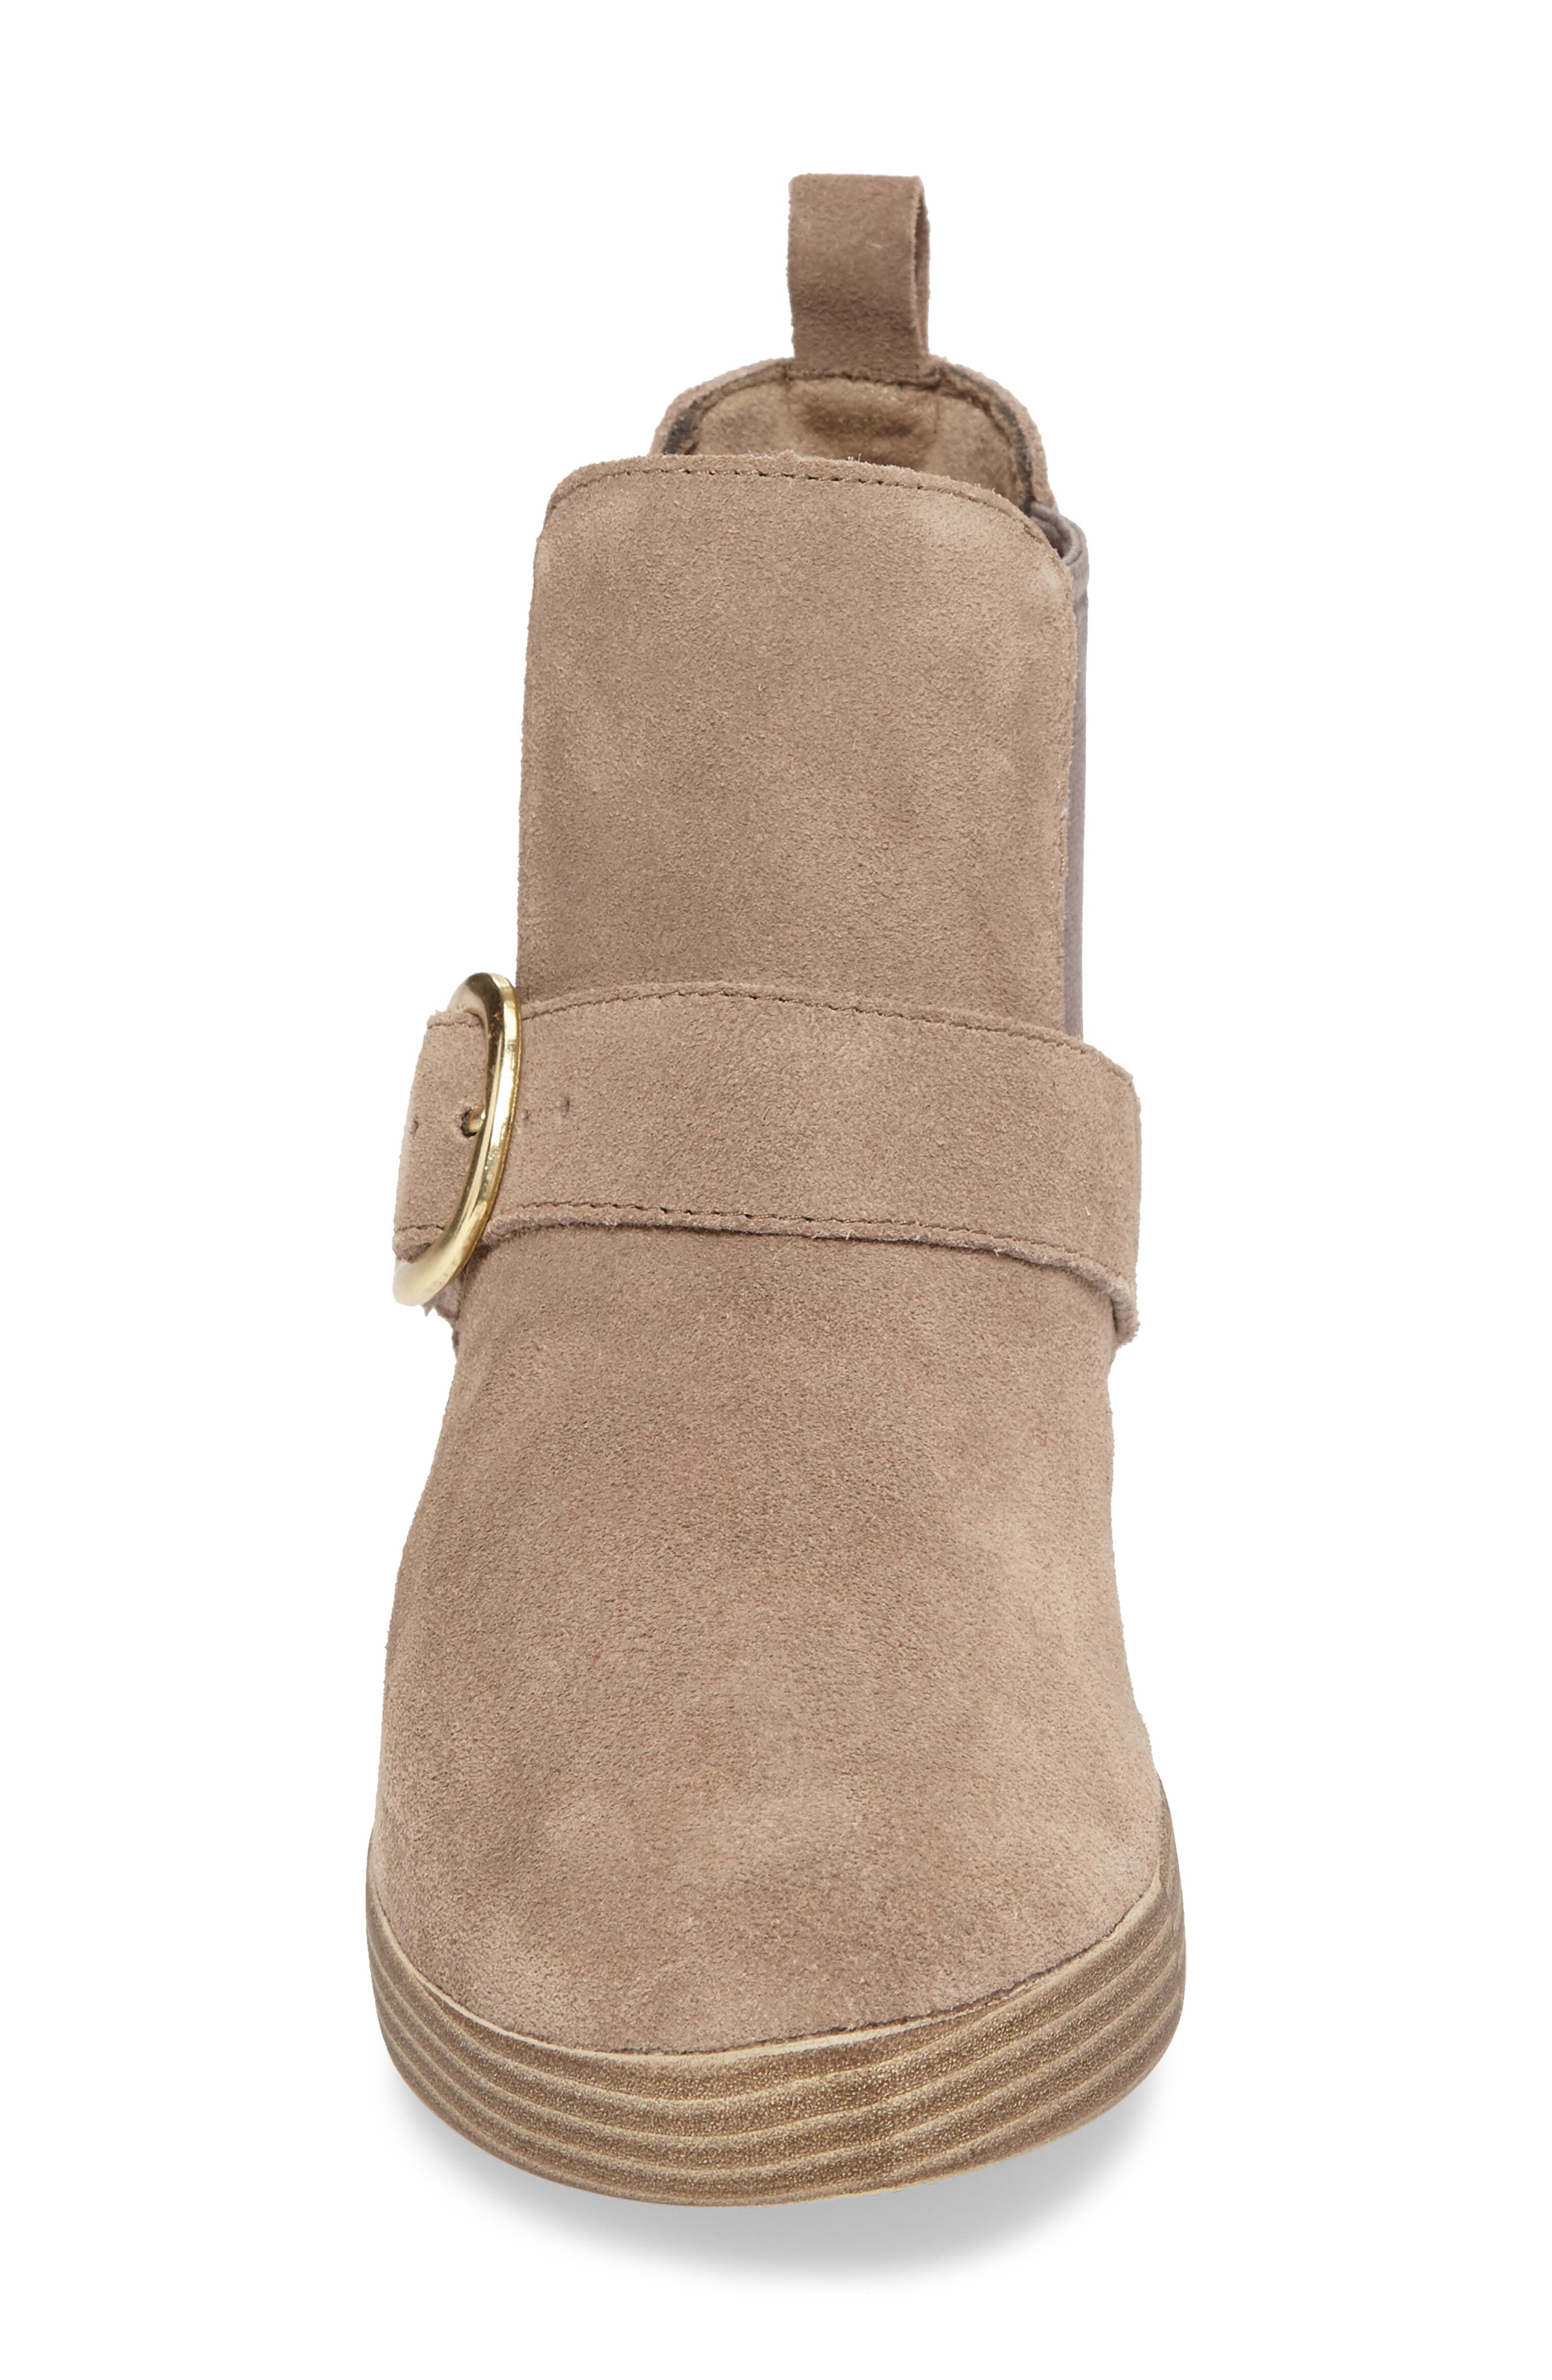 Superbuckle Chelsea Boot,                             Alternate thumbnail 4, color,